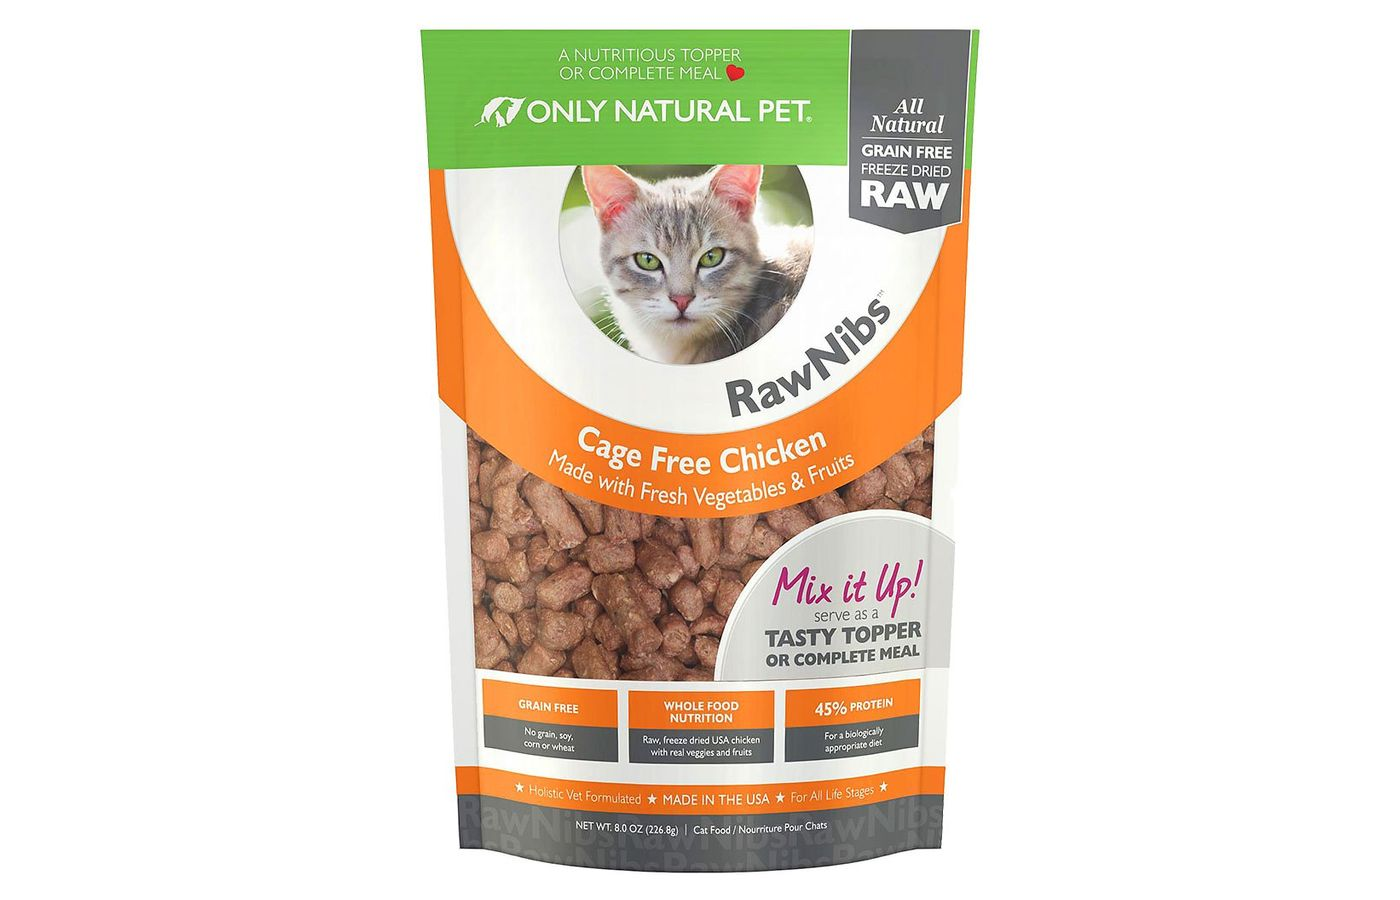 Only Natural Pet Rawnibs Chicken Grain-Free Freeze Dried Cat Food